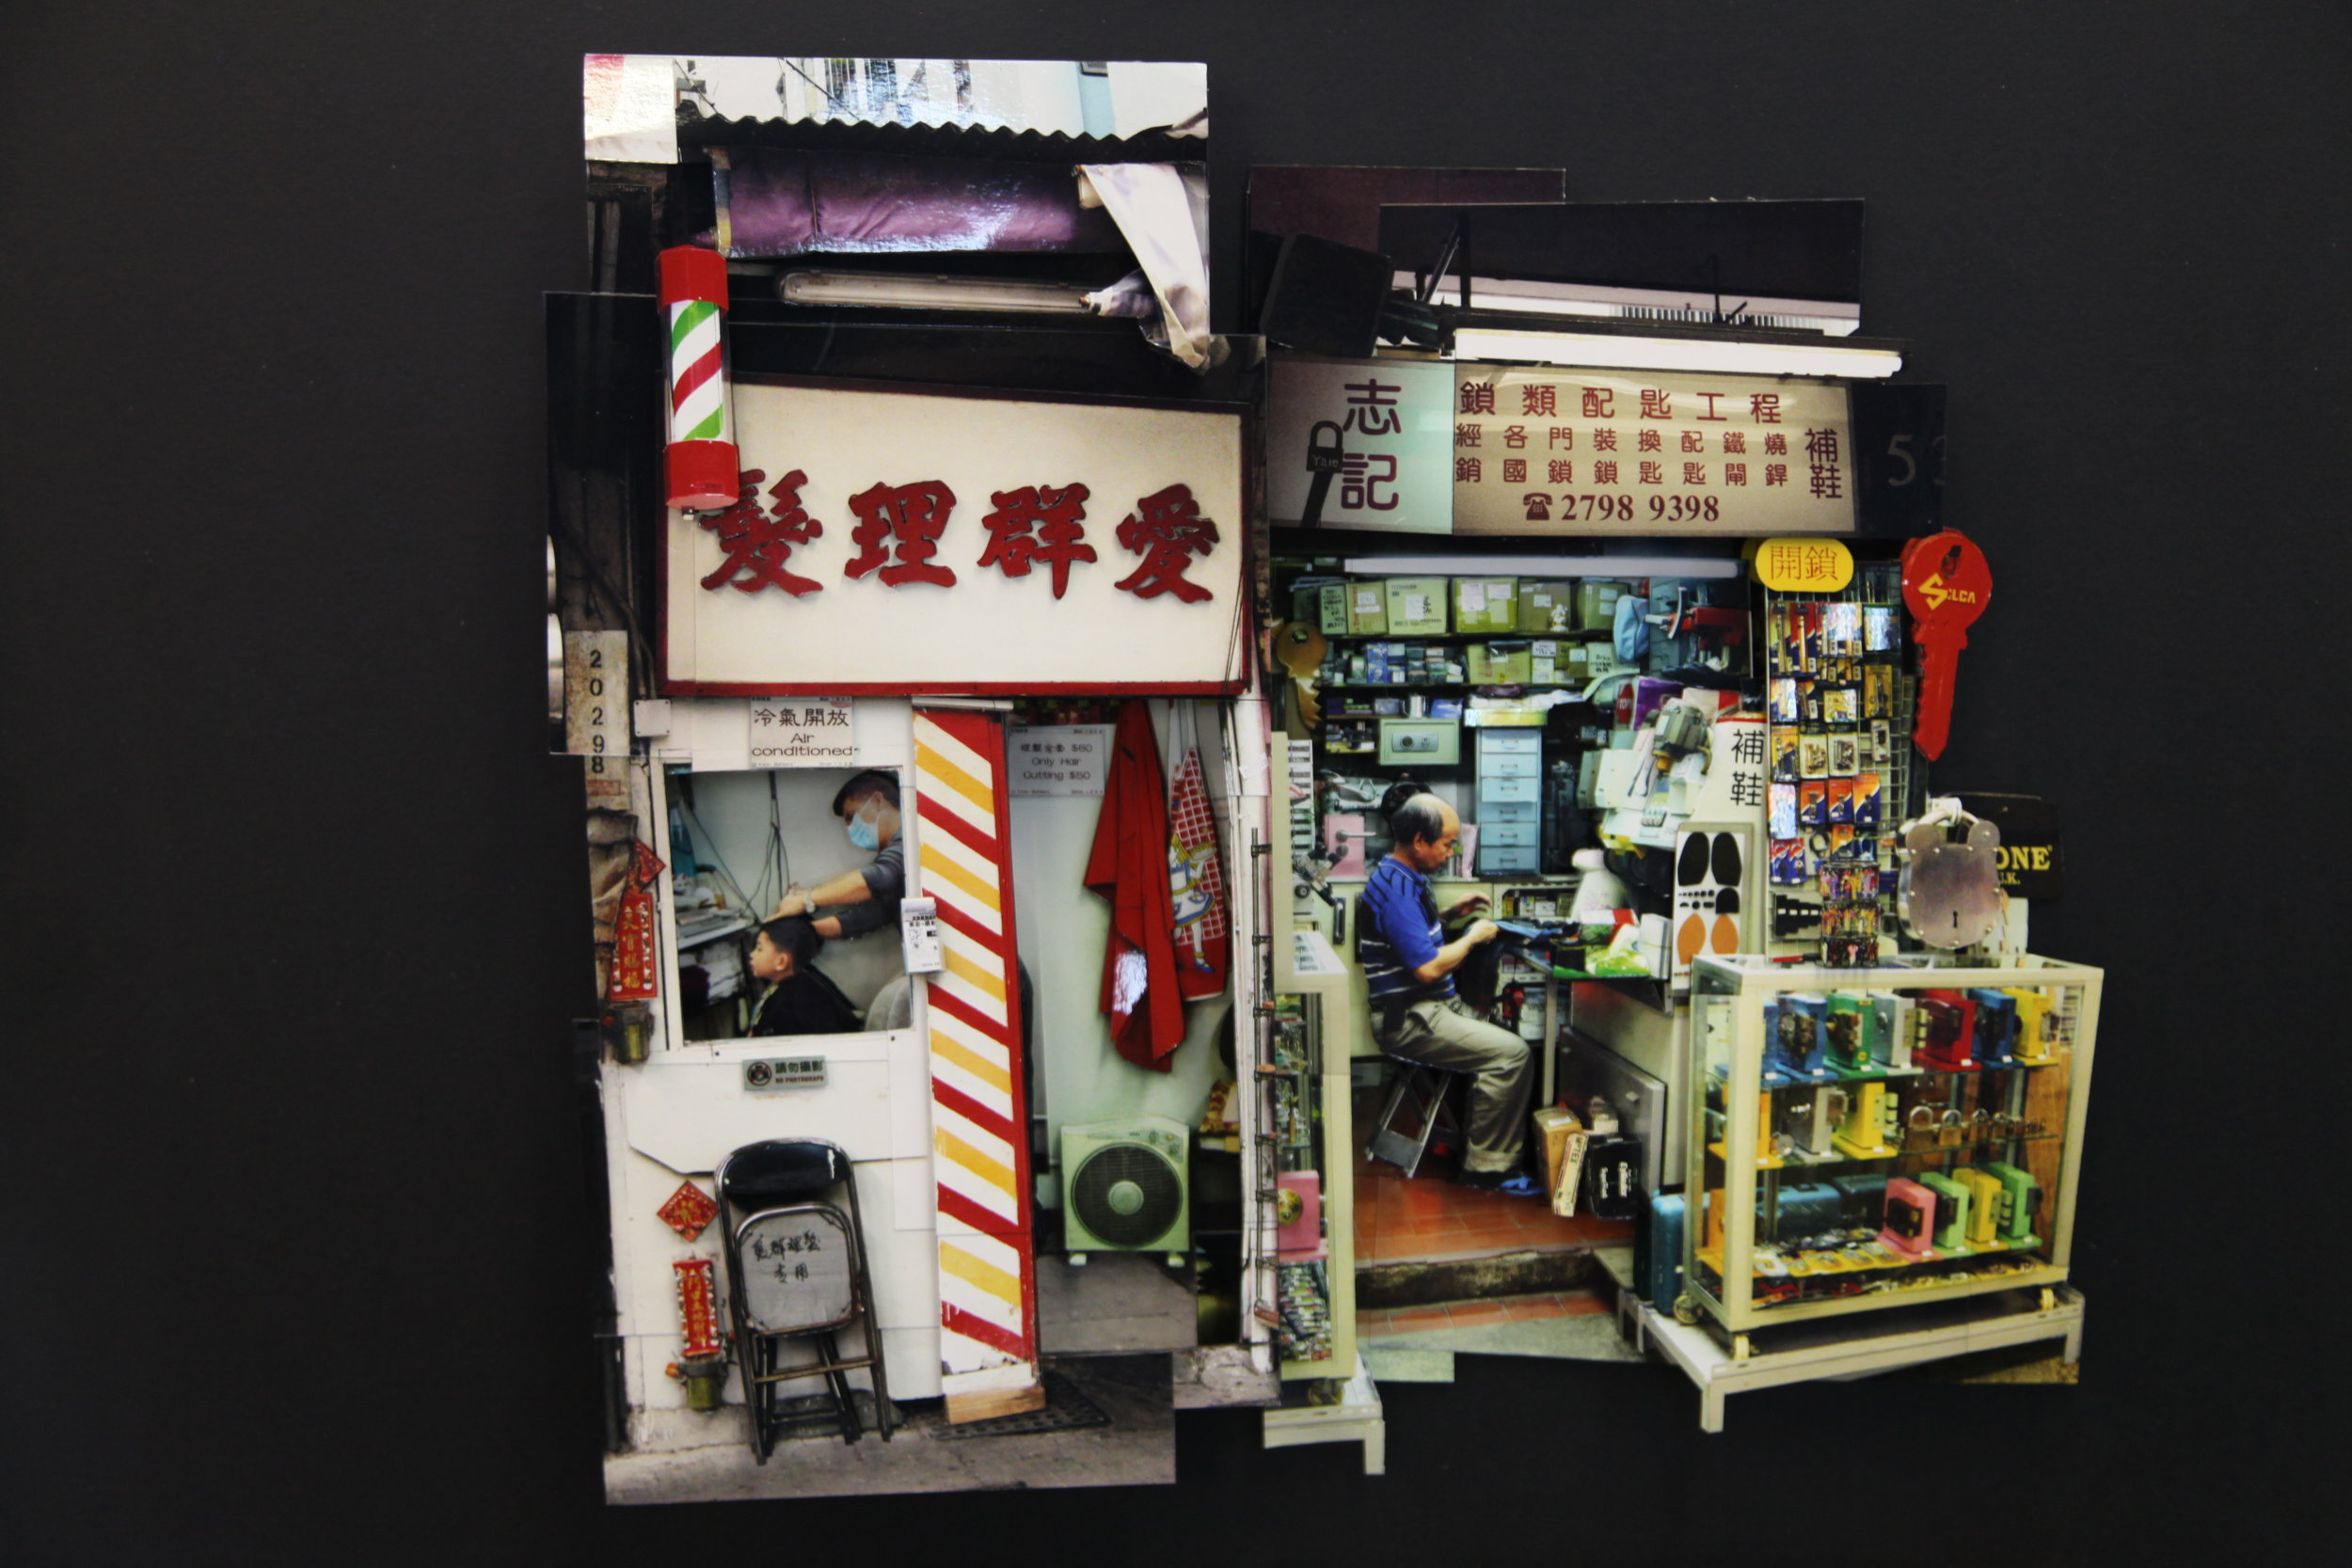 葉家偉 Alexis Ip '老店系列 Barber Shop and Locksmith' (Hong Kong, 2019) Courtesy of Blue Lotus Gallery.JPG